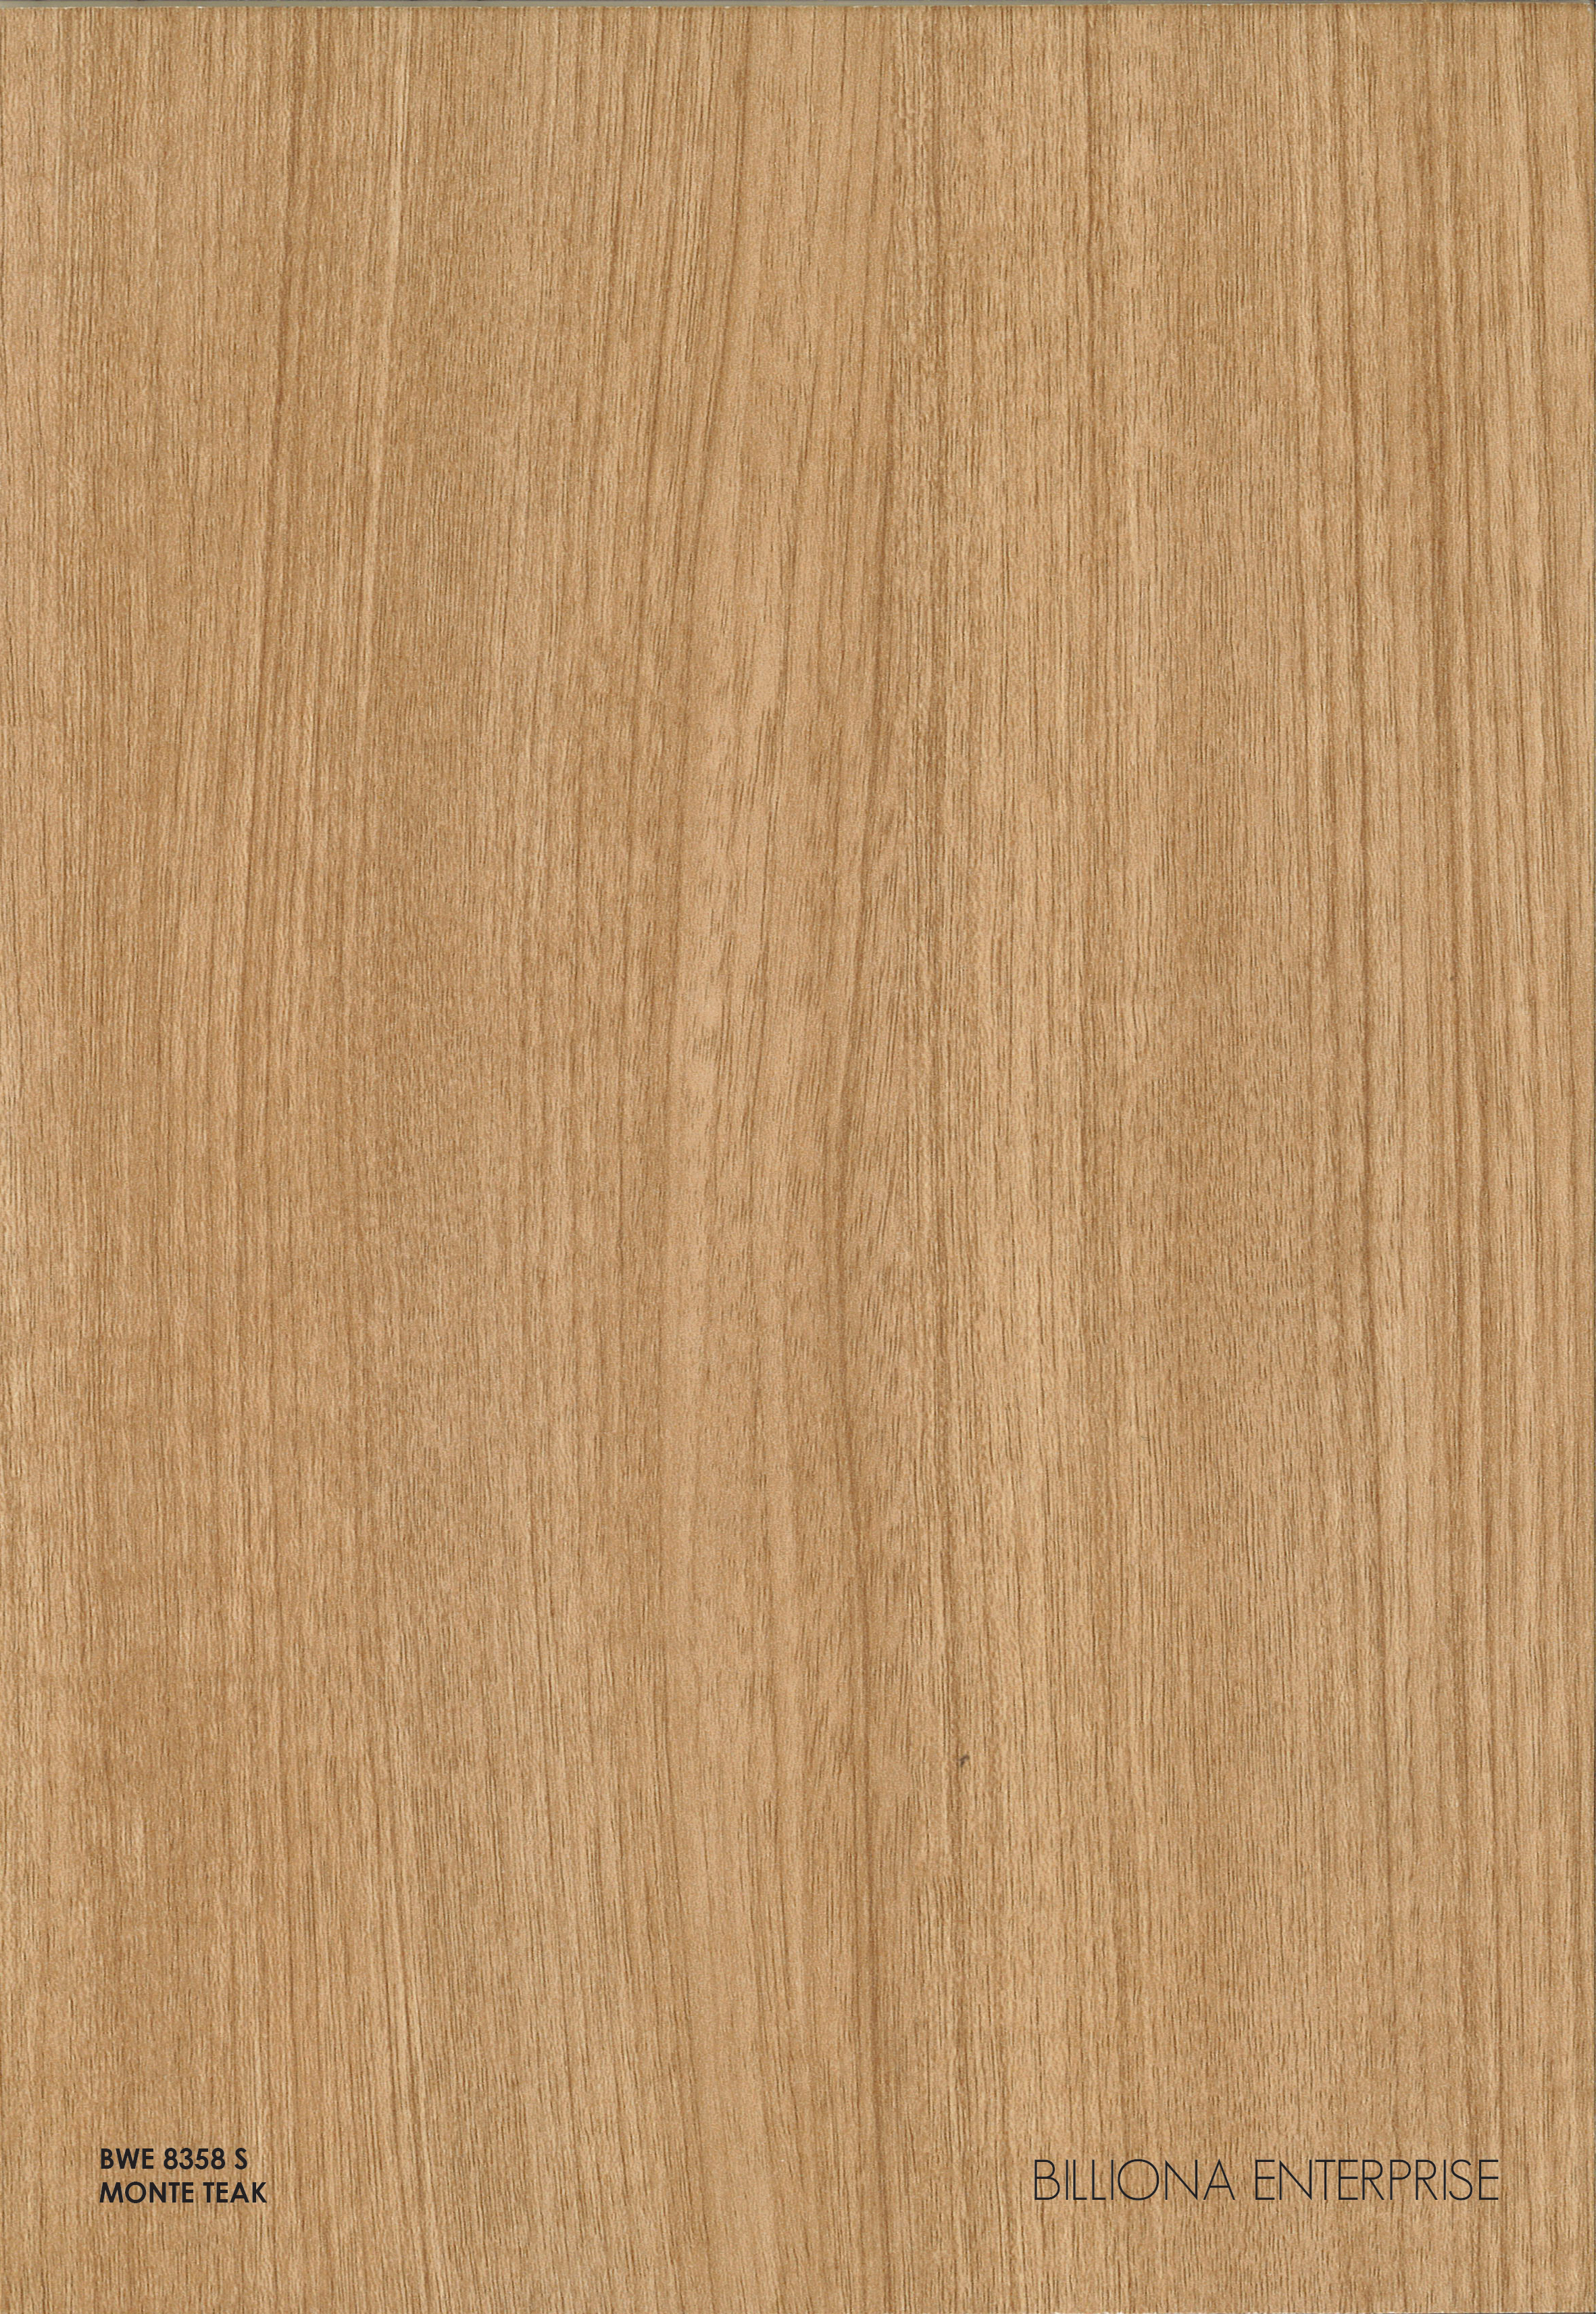 BWE 8358 S - Monte Teak High Pressure Laminate (HPL), Billiona Enterprise Singapore